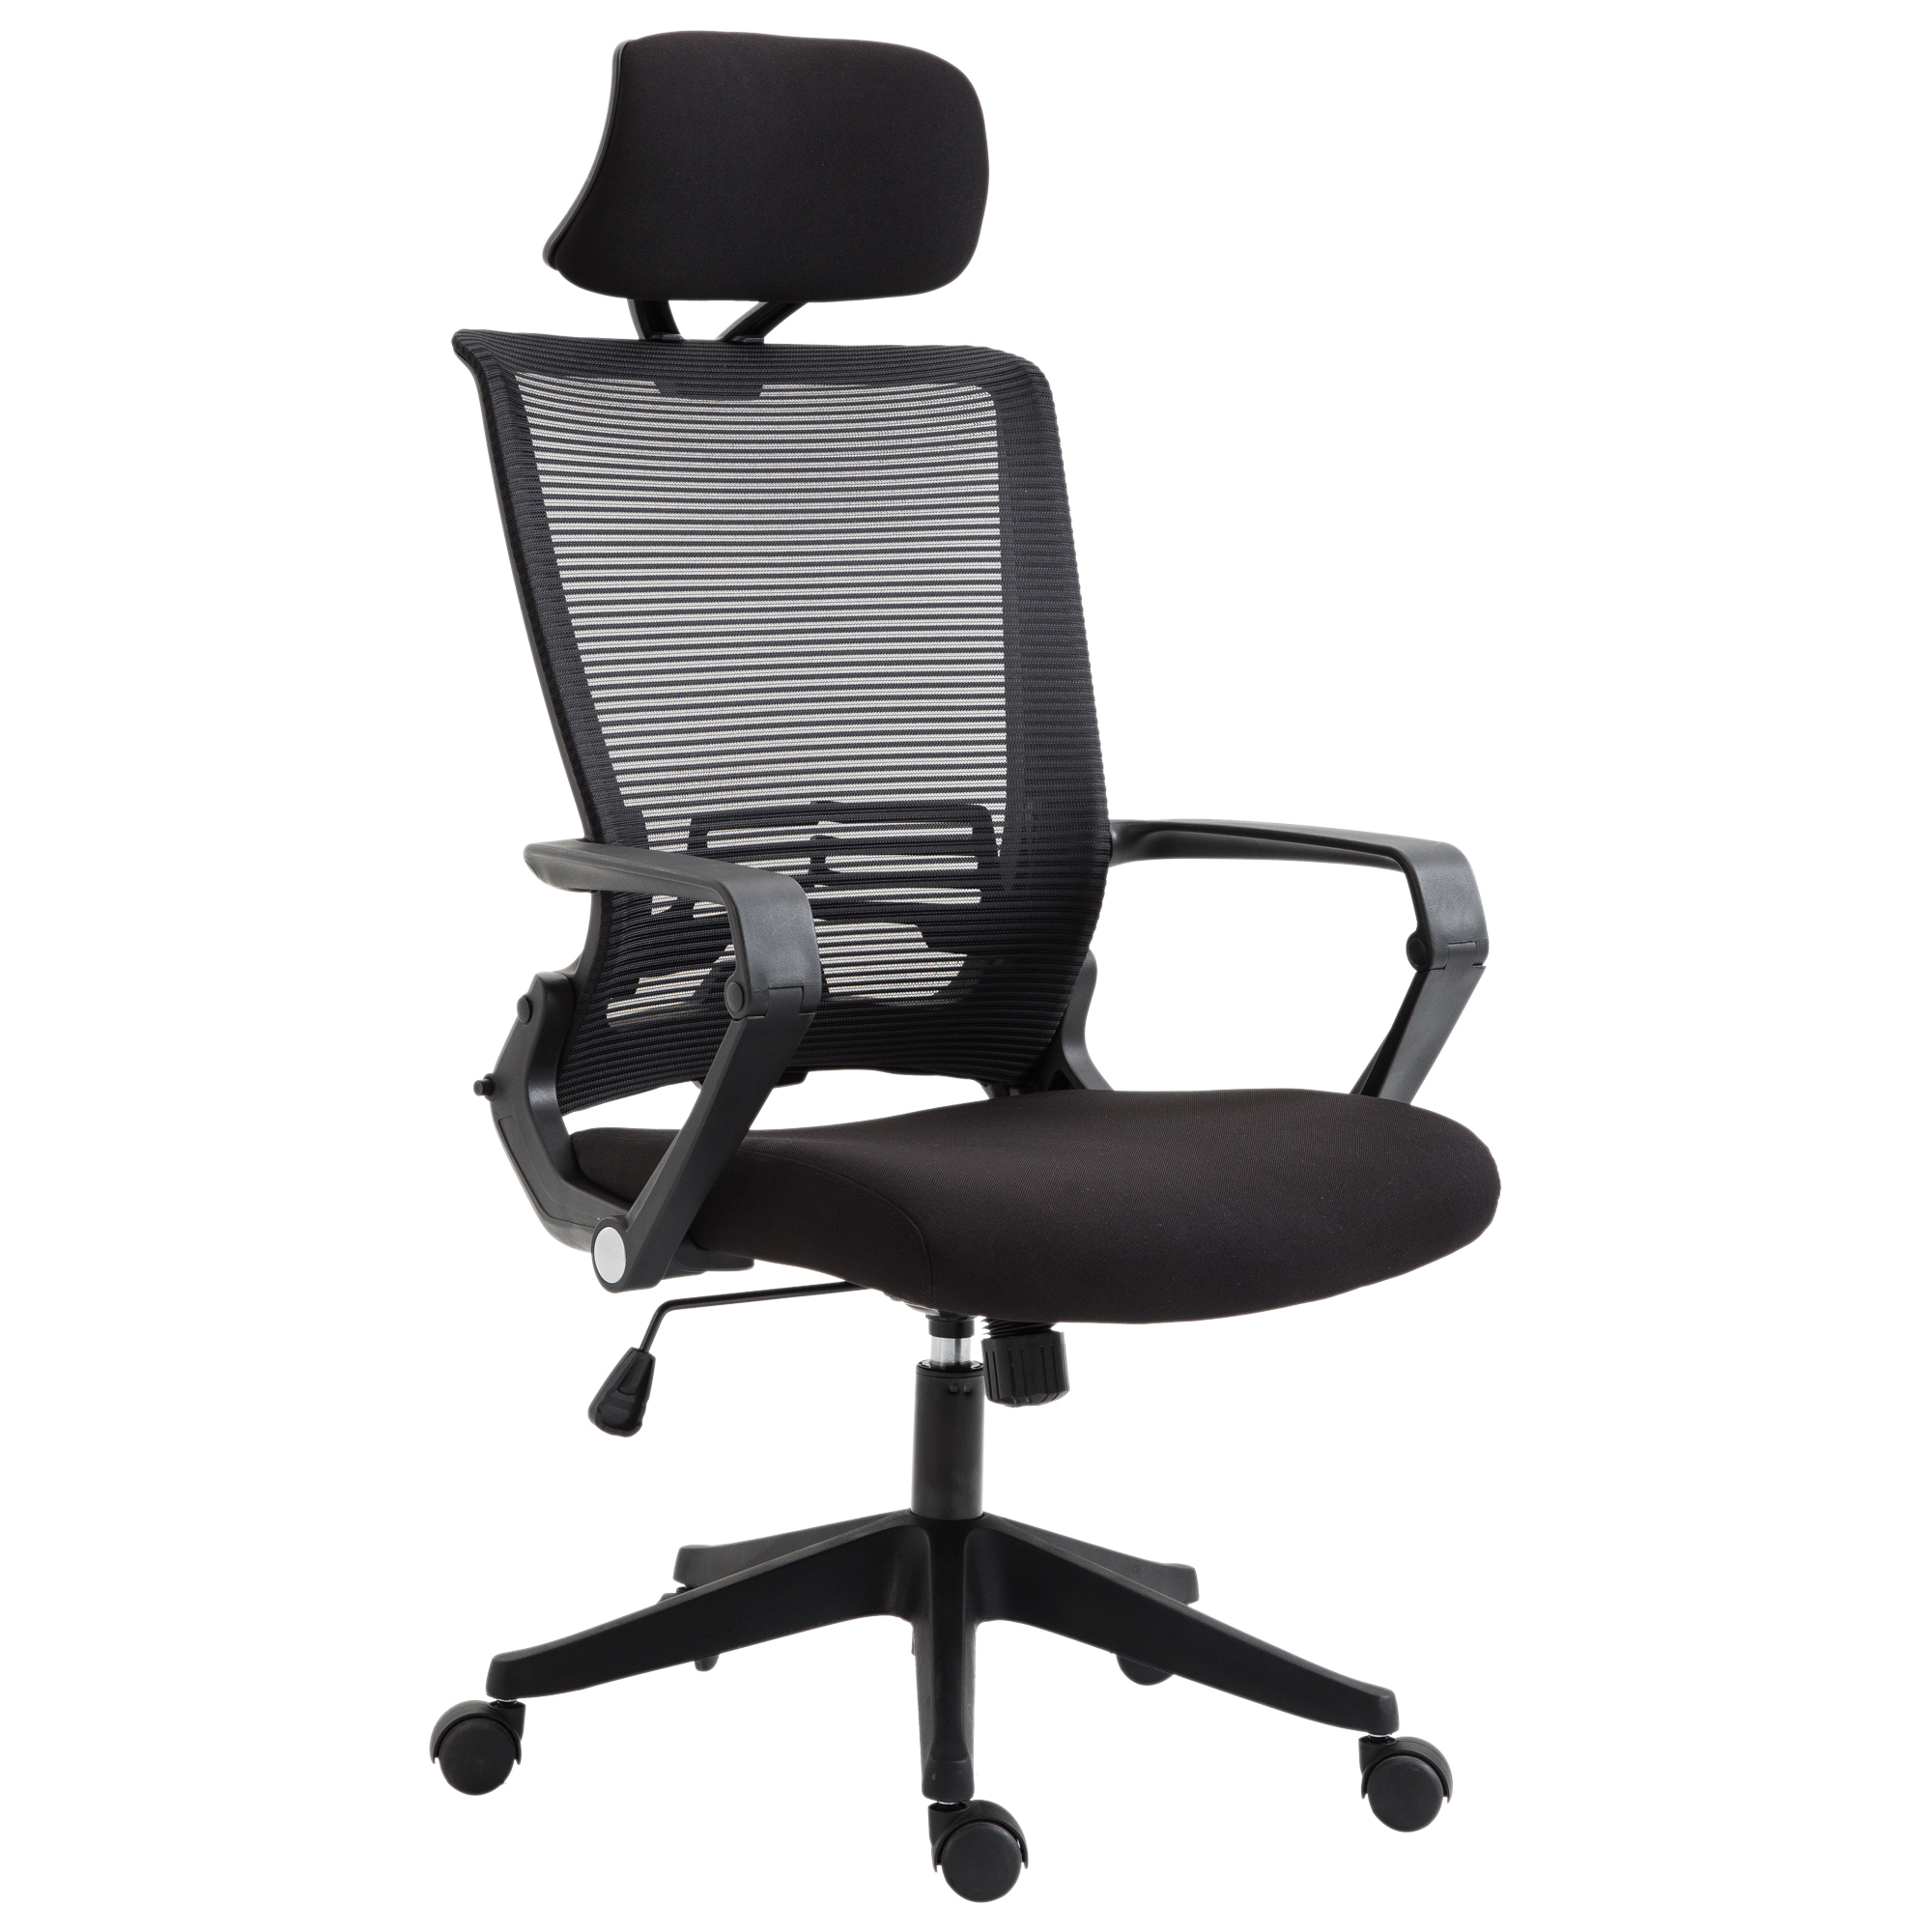 Image of CAD $169.99 Vinsetto High Back Mesh Office Chair with Headrest Black / Ergonomic Executive Computer Seat Lumbar Support Task Canada 95509802583